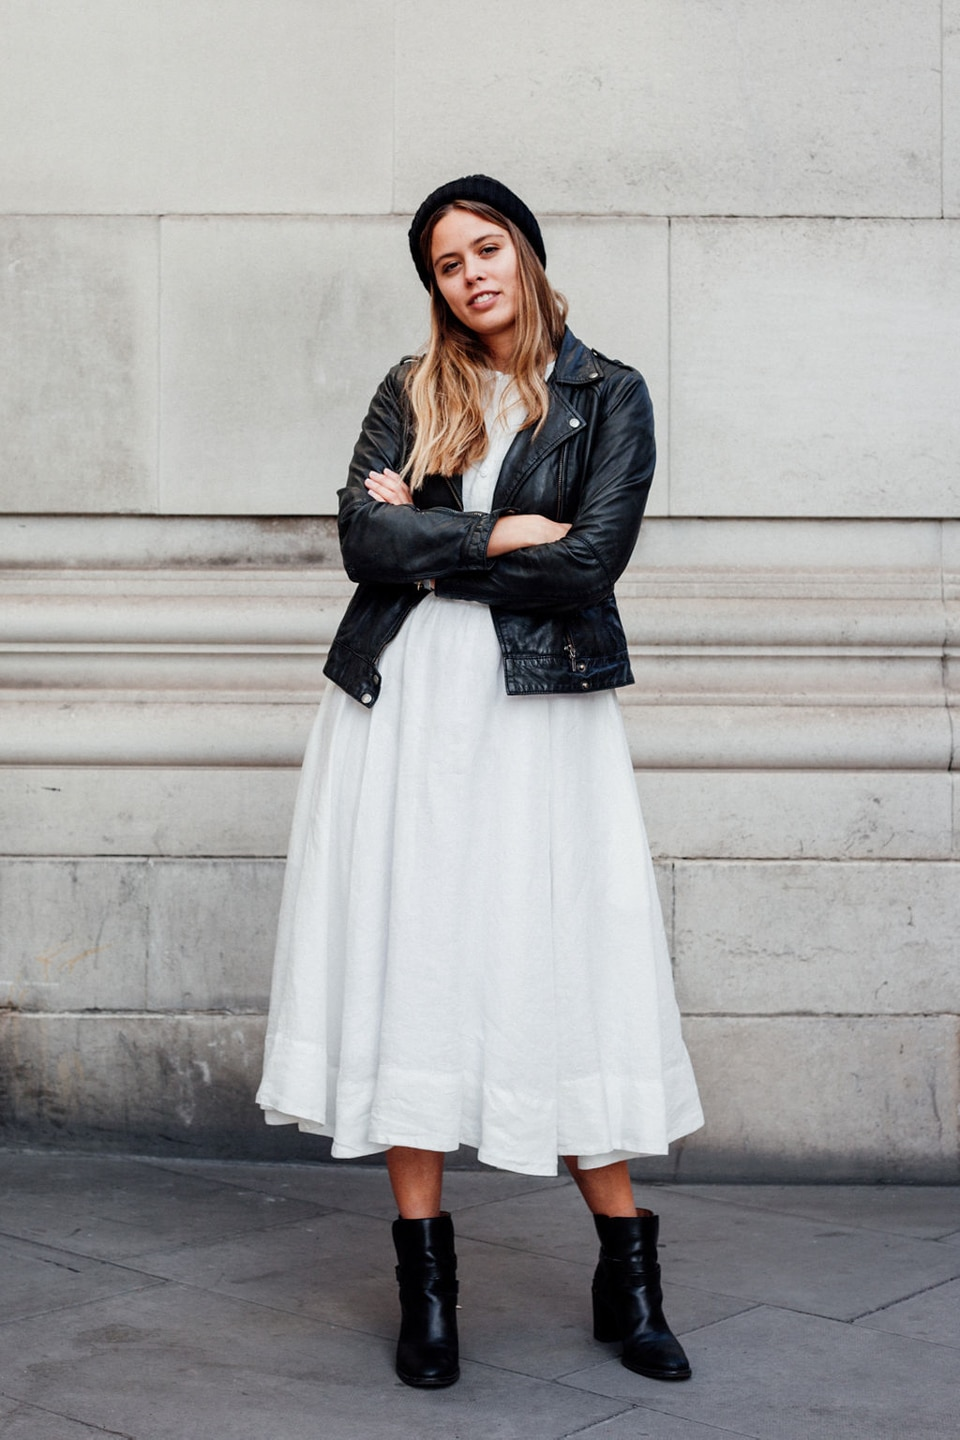 Jil wears a white dress with black leather jacket and hat